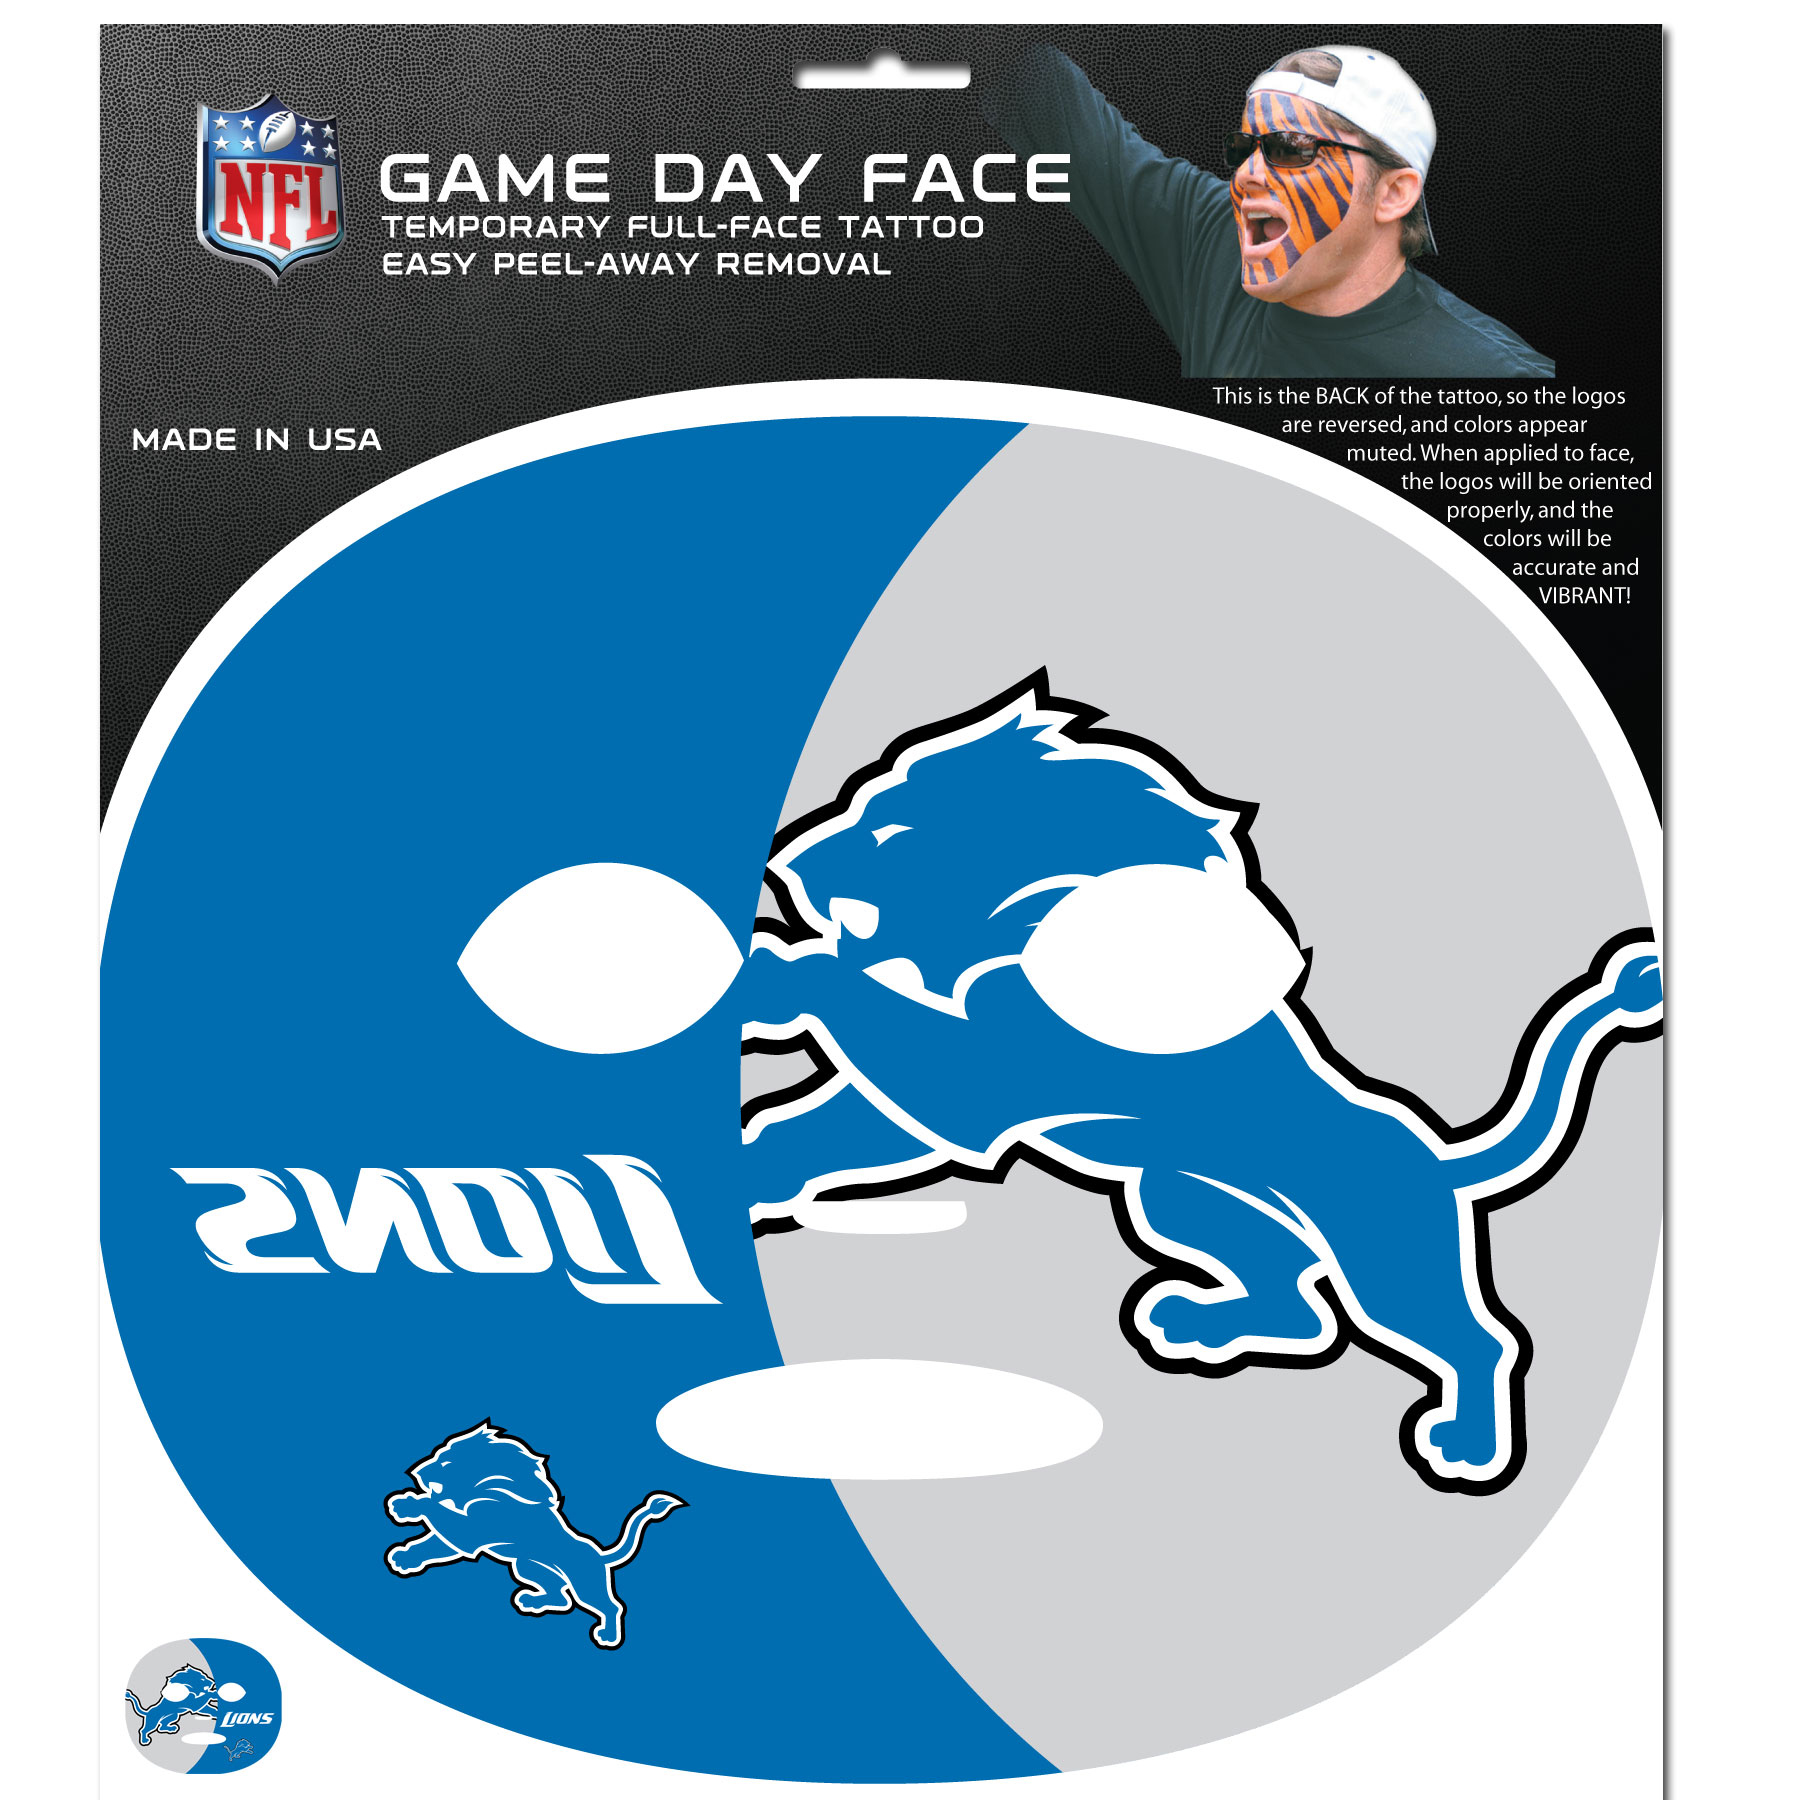 Detroit Lions Game Face Temporary Tattoo - No better way to show your Detroit Lions pride than by painting your face. Siskiyou's Game Day Face Temporary Tattoo isn't your typical face paint. It is a water based application that doesn't smudge, smear or sweat off  while you're wearing it and easily peels off after you're done celebrating your team's big Win! The temporary tattoo is large enough to trim down to fit your face.  Our Game Day Face Temporary Tattoo's are fun for fans of all ages. You may have seen our product before,  these are the same Temporary Face Tattoos as pitched on ABC's Shark Tank.